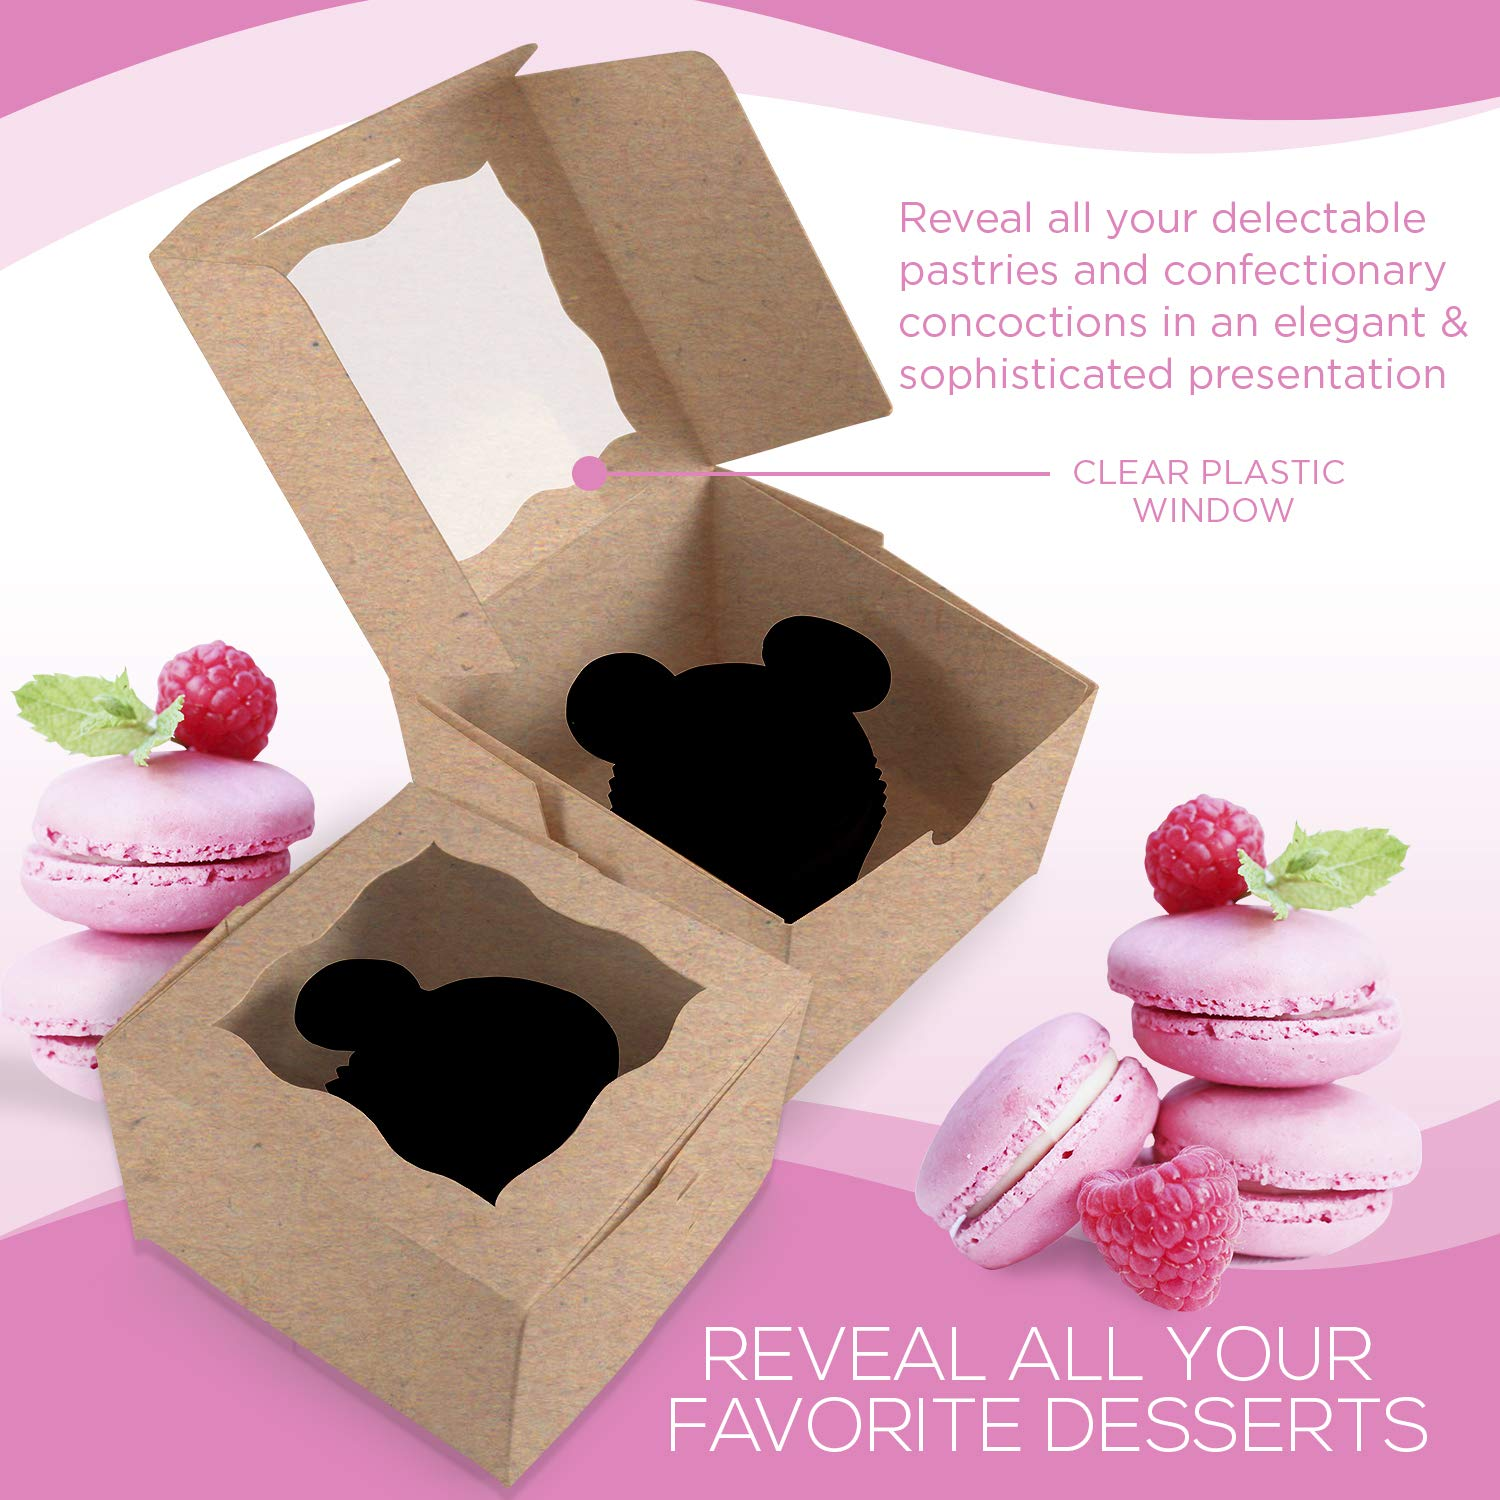 [50Pack] Bakery and Wedding Favor Boxes with Window 4x4x2.5'' - Gift Boxes for Cookies, Cake, Pastries, Donuts, Cupcakes, Candy & Baked Good Treats | Small Dessert Packaging Party Containers by FreshLi (Image #4)